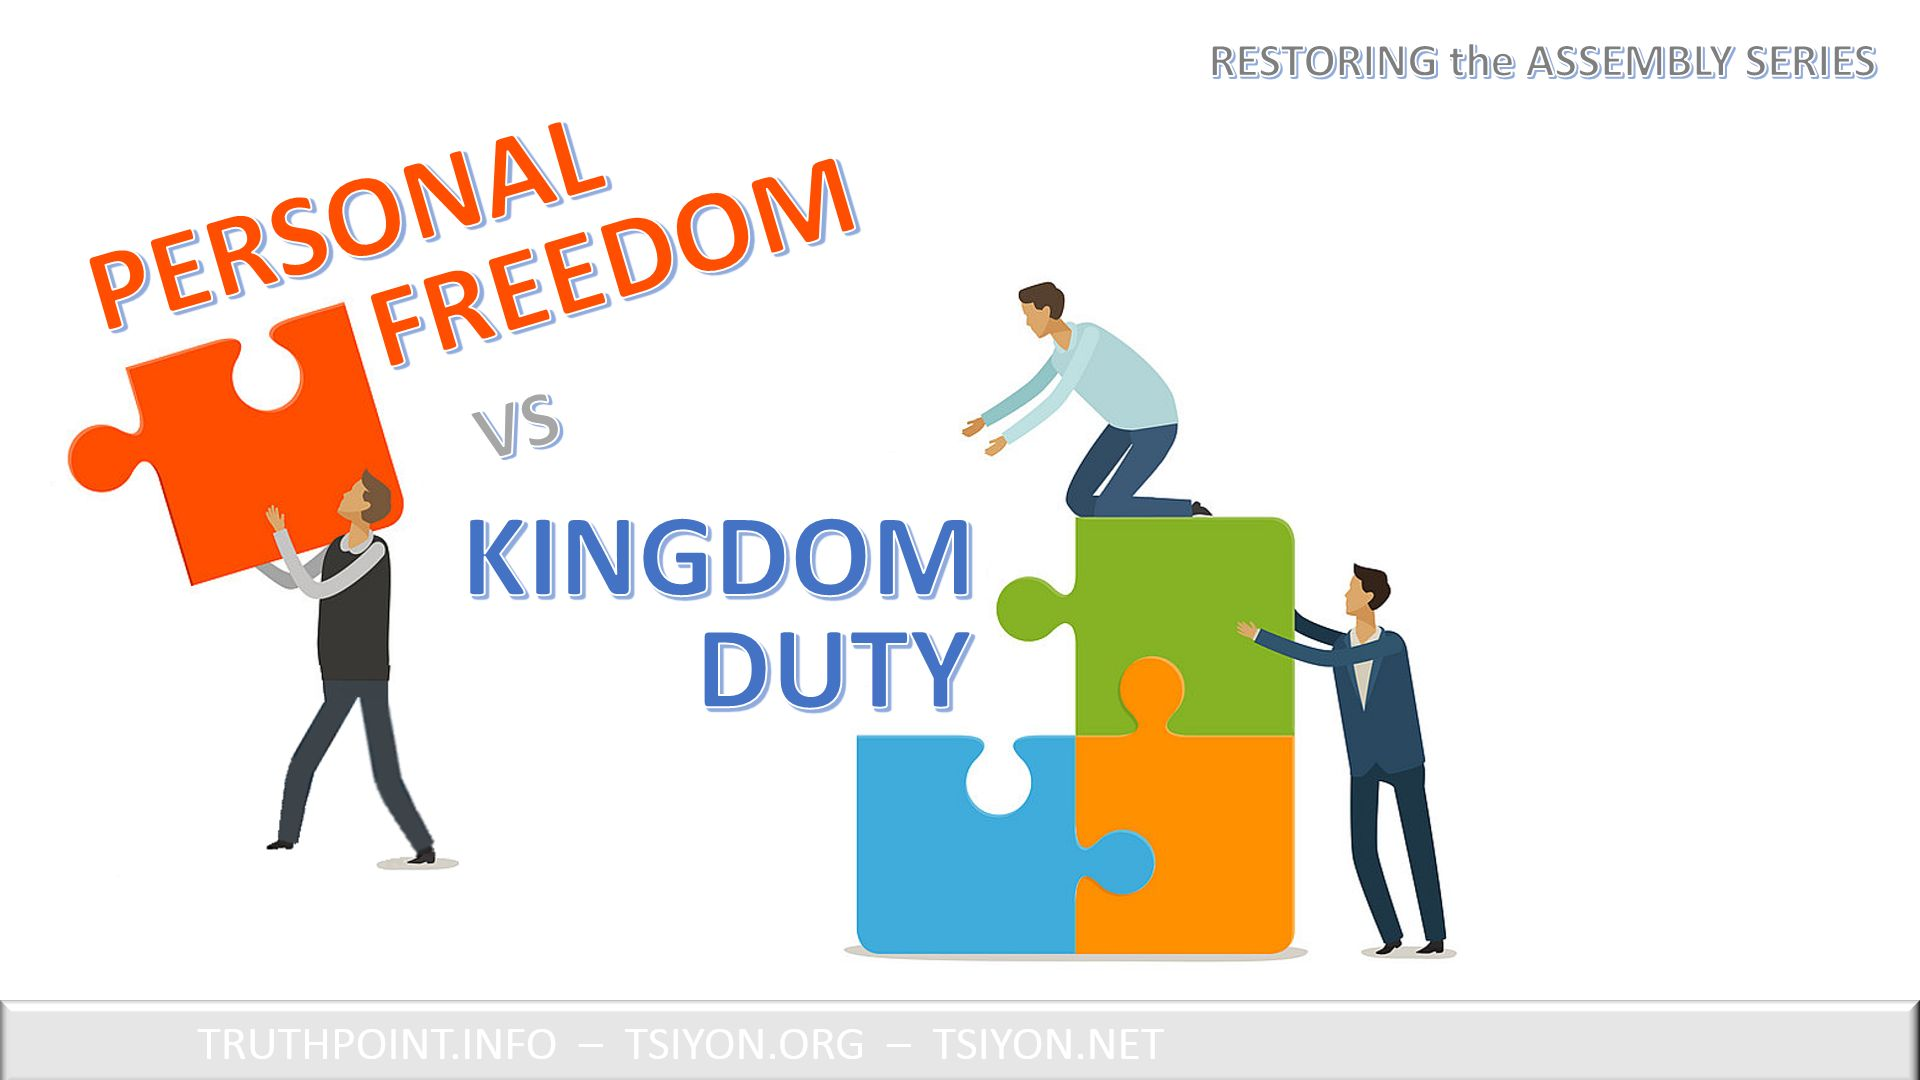 wanna be free personal freedom vs kingdom duty